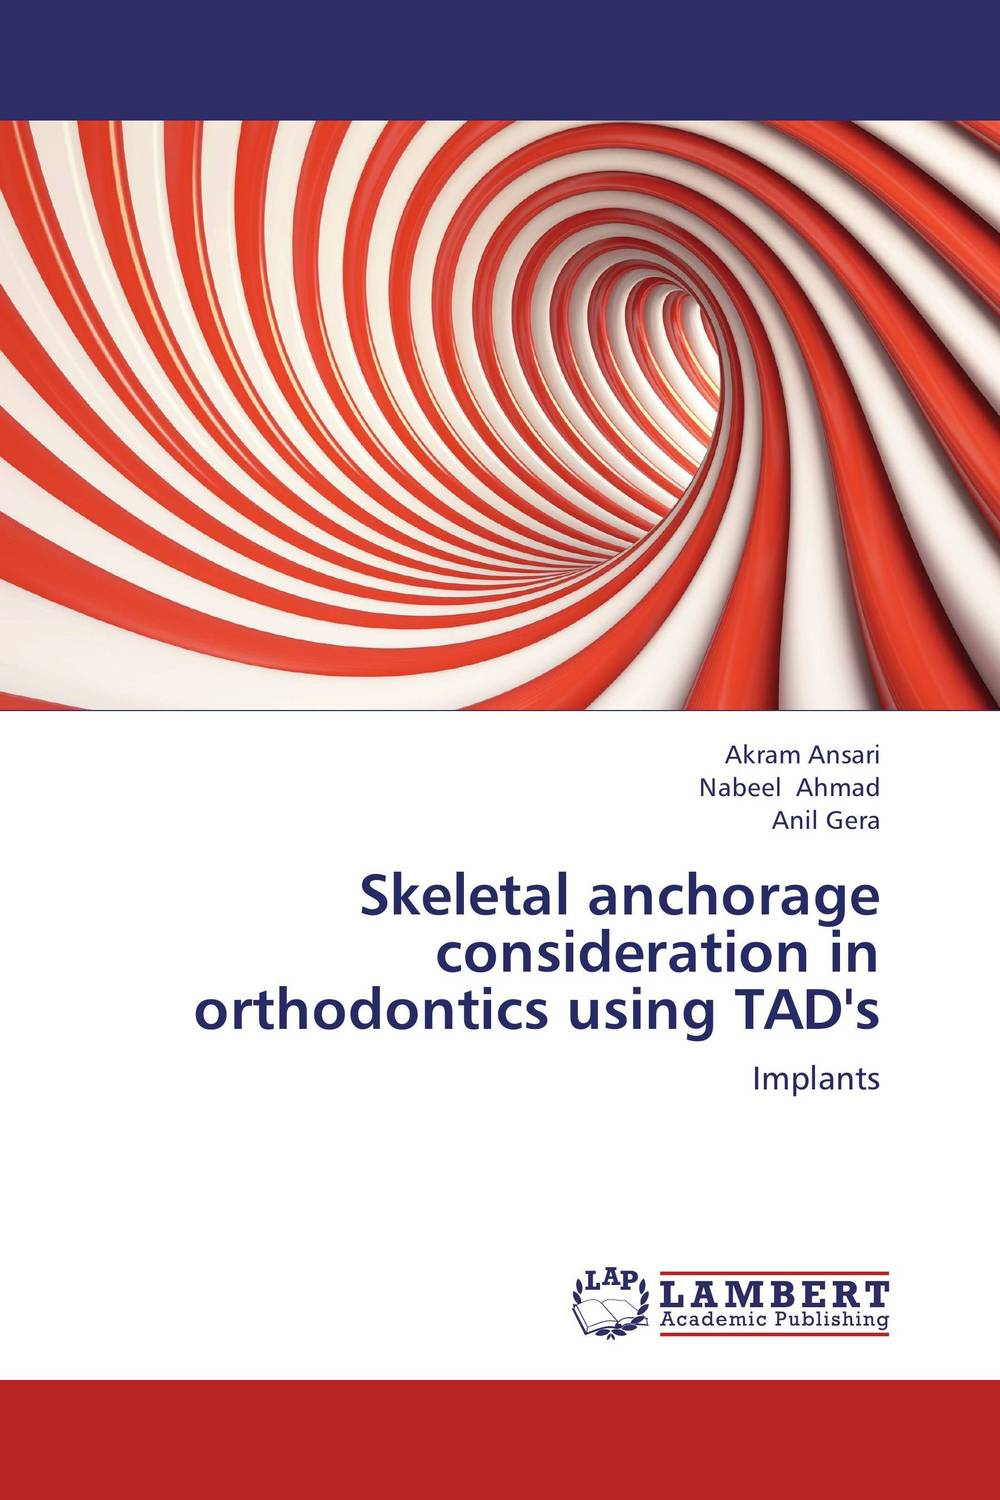 Skeletal anchorage consideration in orthodontics using TAD's occlusion in orthodontics